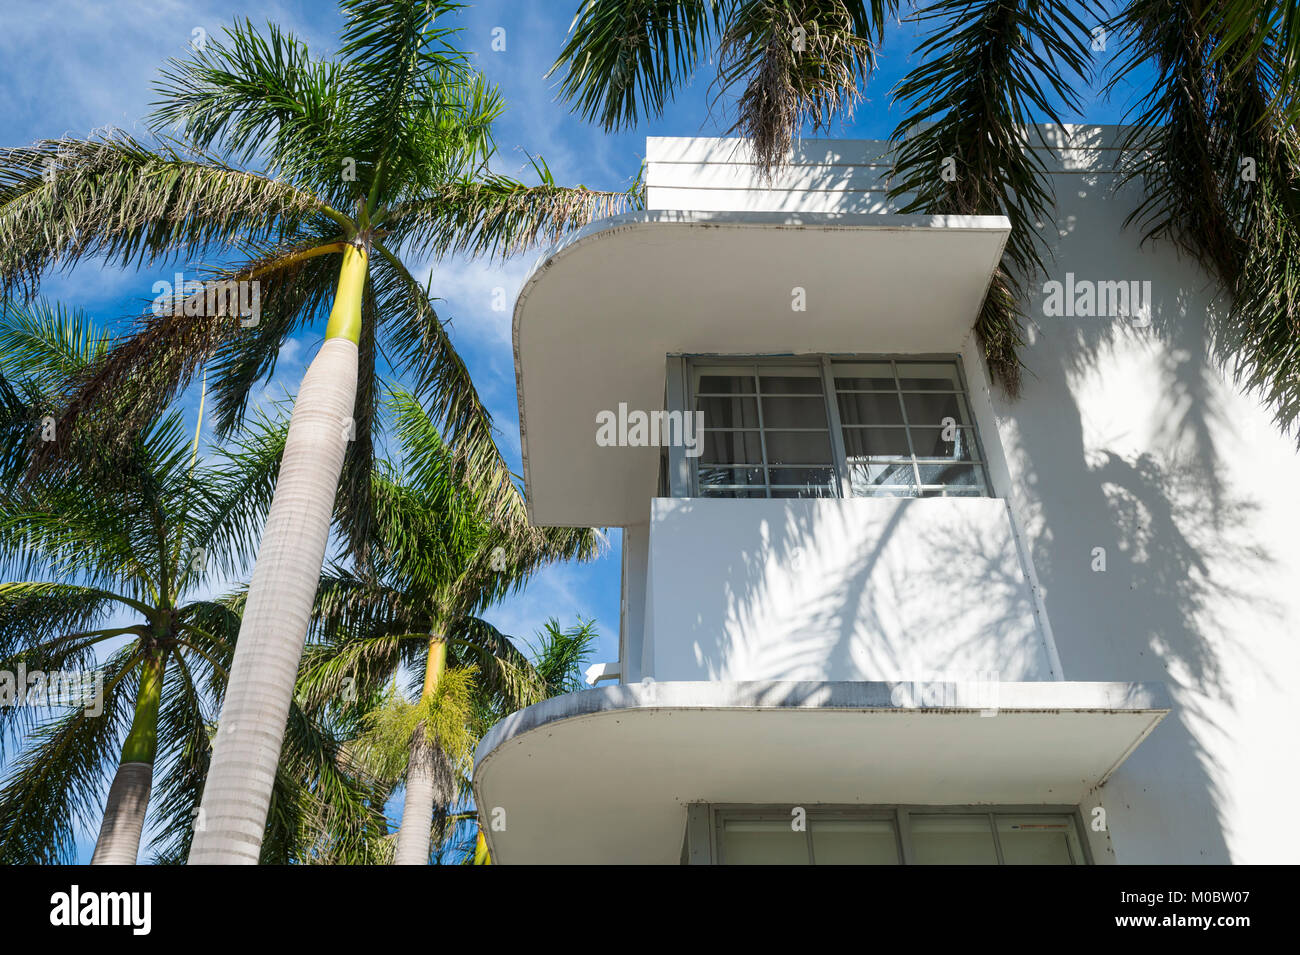 Detail of classic Art Deco architecture with palm trees and blue sky in South Beach, Miami, Florida - Stock Image